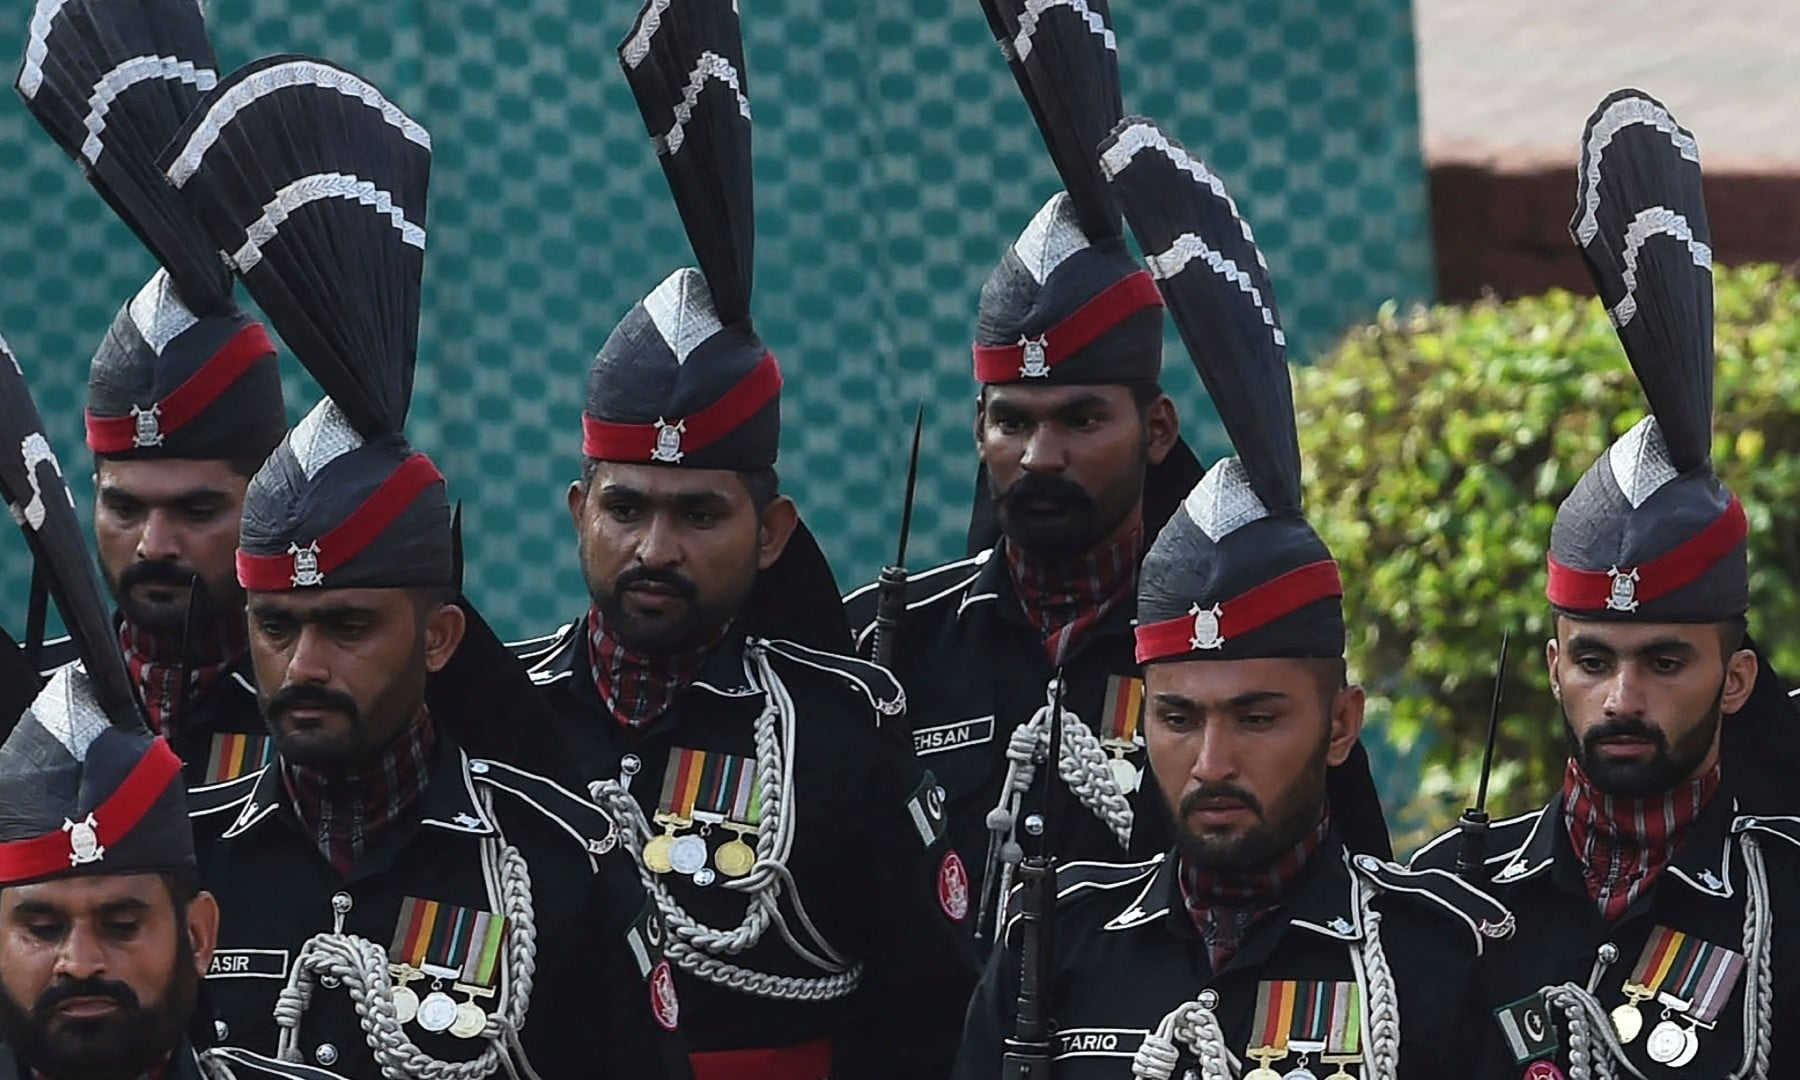 Pakistan's Rangers march past the tomb of national poet Allama Mohammad Iqbal during Independence Day celebrations in Lahore on August 14. — AFP